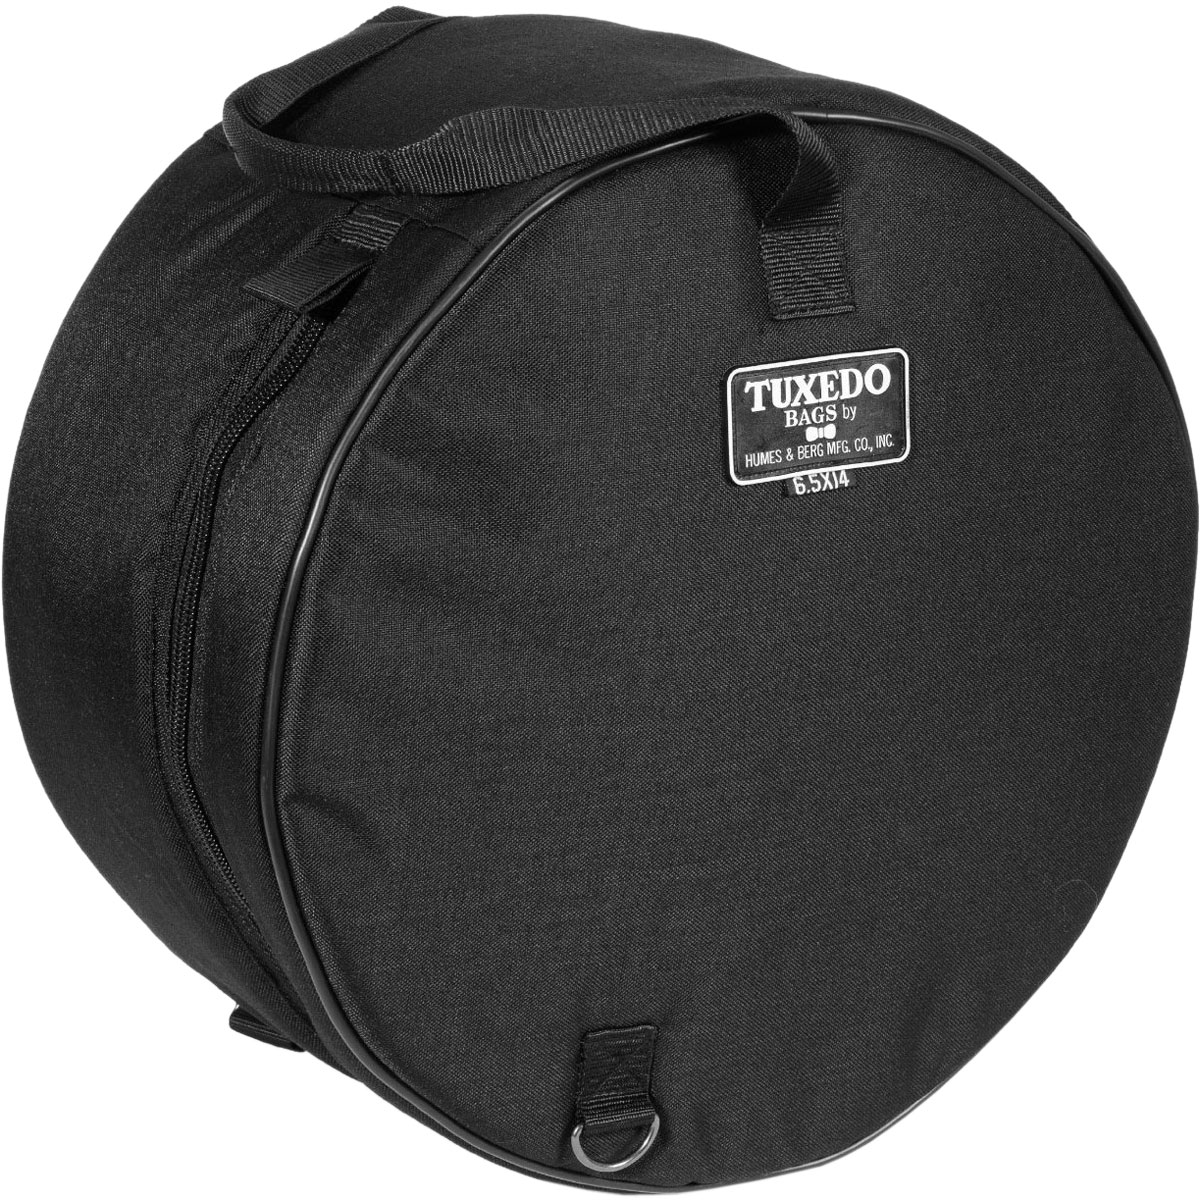 "Humes & Berg 6.5"" (Deep) x 14"" (Diameter) Tuxedo Snare Bag/Soft Case"